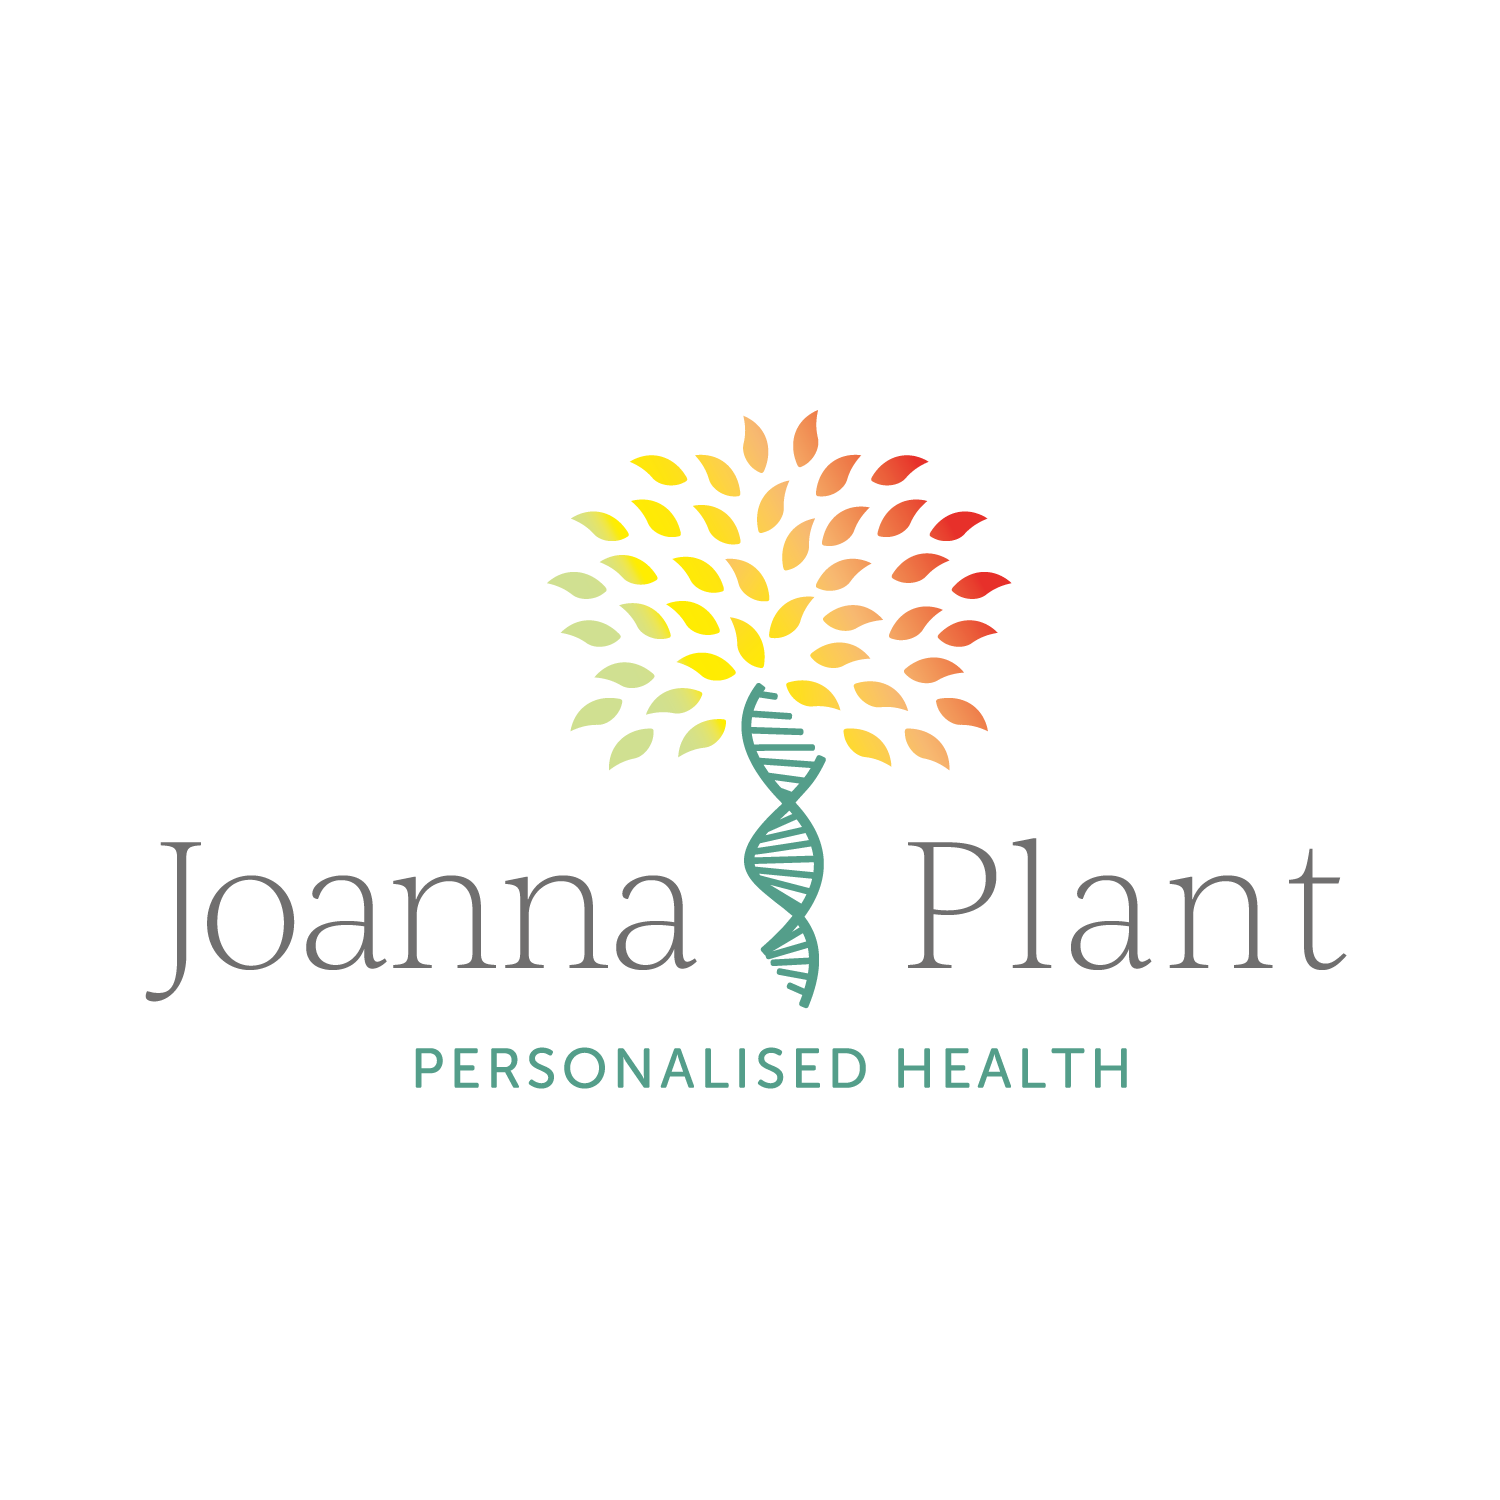 https://micheledonnison.co.uk/wp-content/uploads/2020/08/Joanna-Plant-Logo-Square-Profile-Pic.png